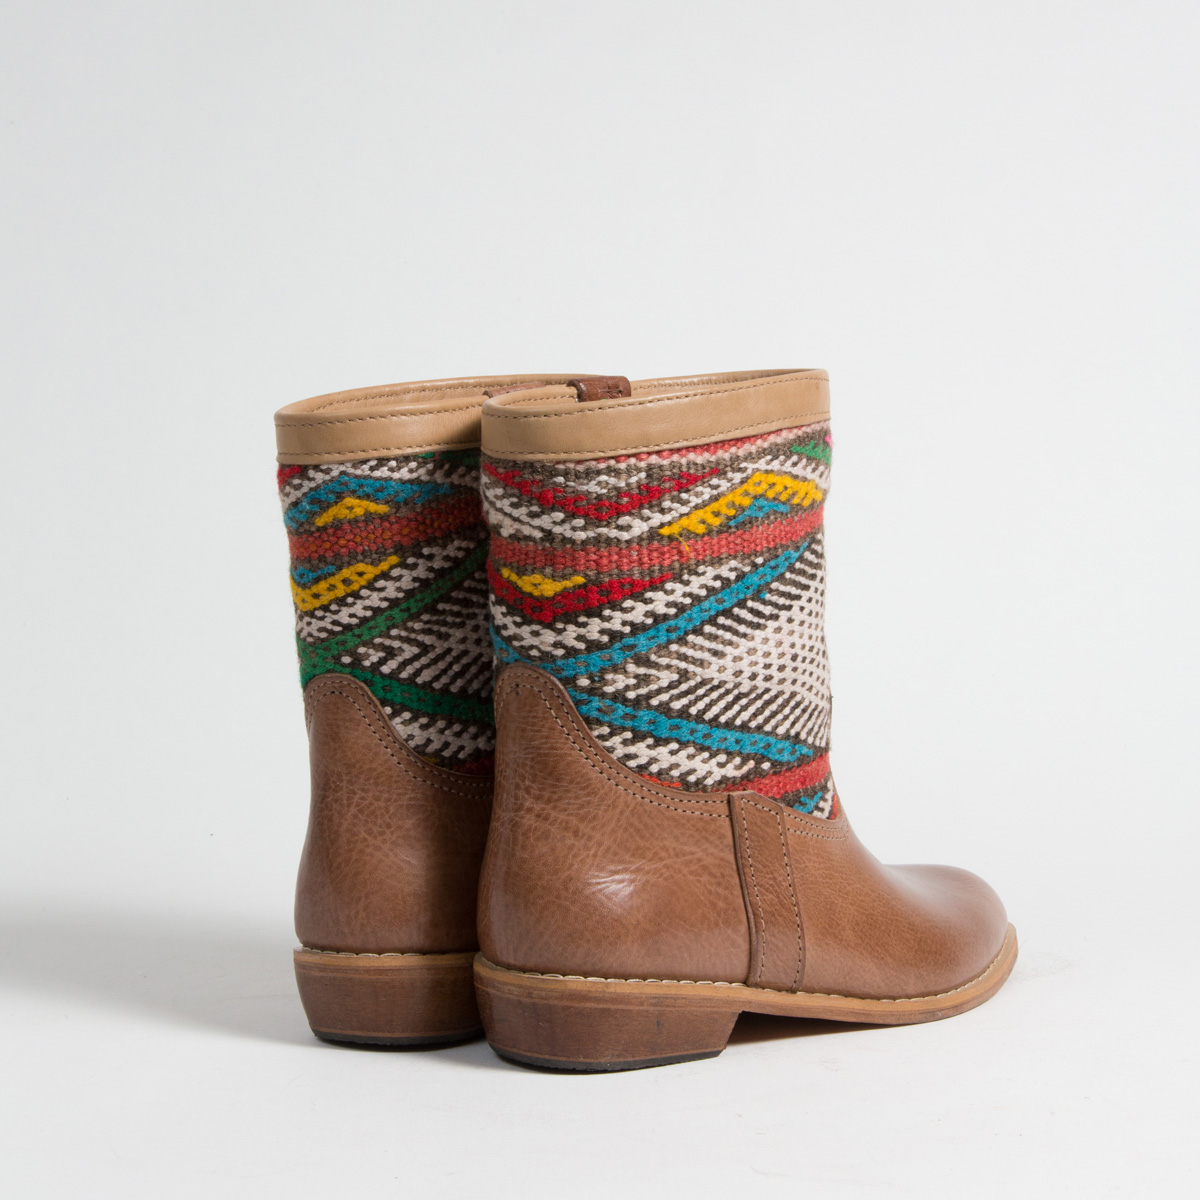 Bottines Kilim cuir mababouche artisanales (Réf. MCH4-39)